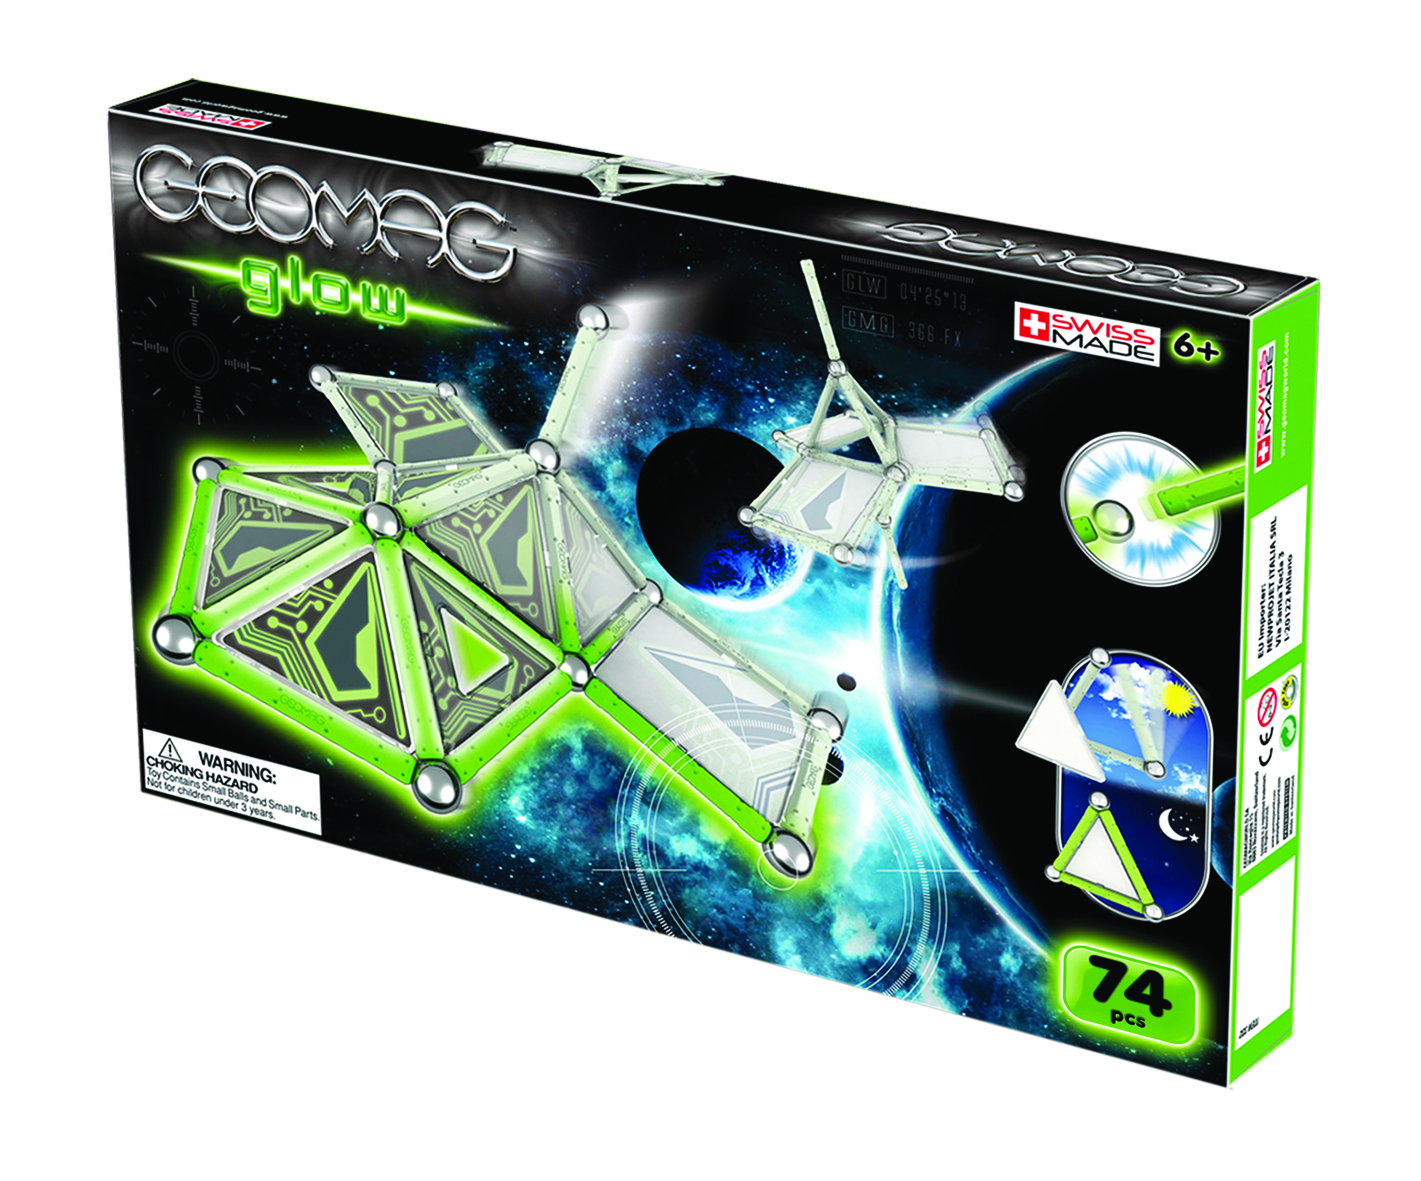 Ellenbray July 2011 Eco Tools 1332 Glow For It Create Geomag Shapes That Are Out Of This World With The Space In Dark 76 Piece Set